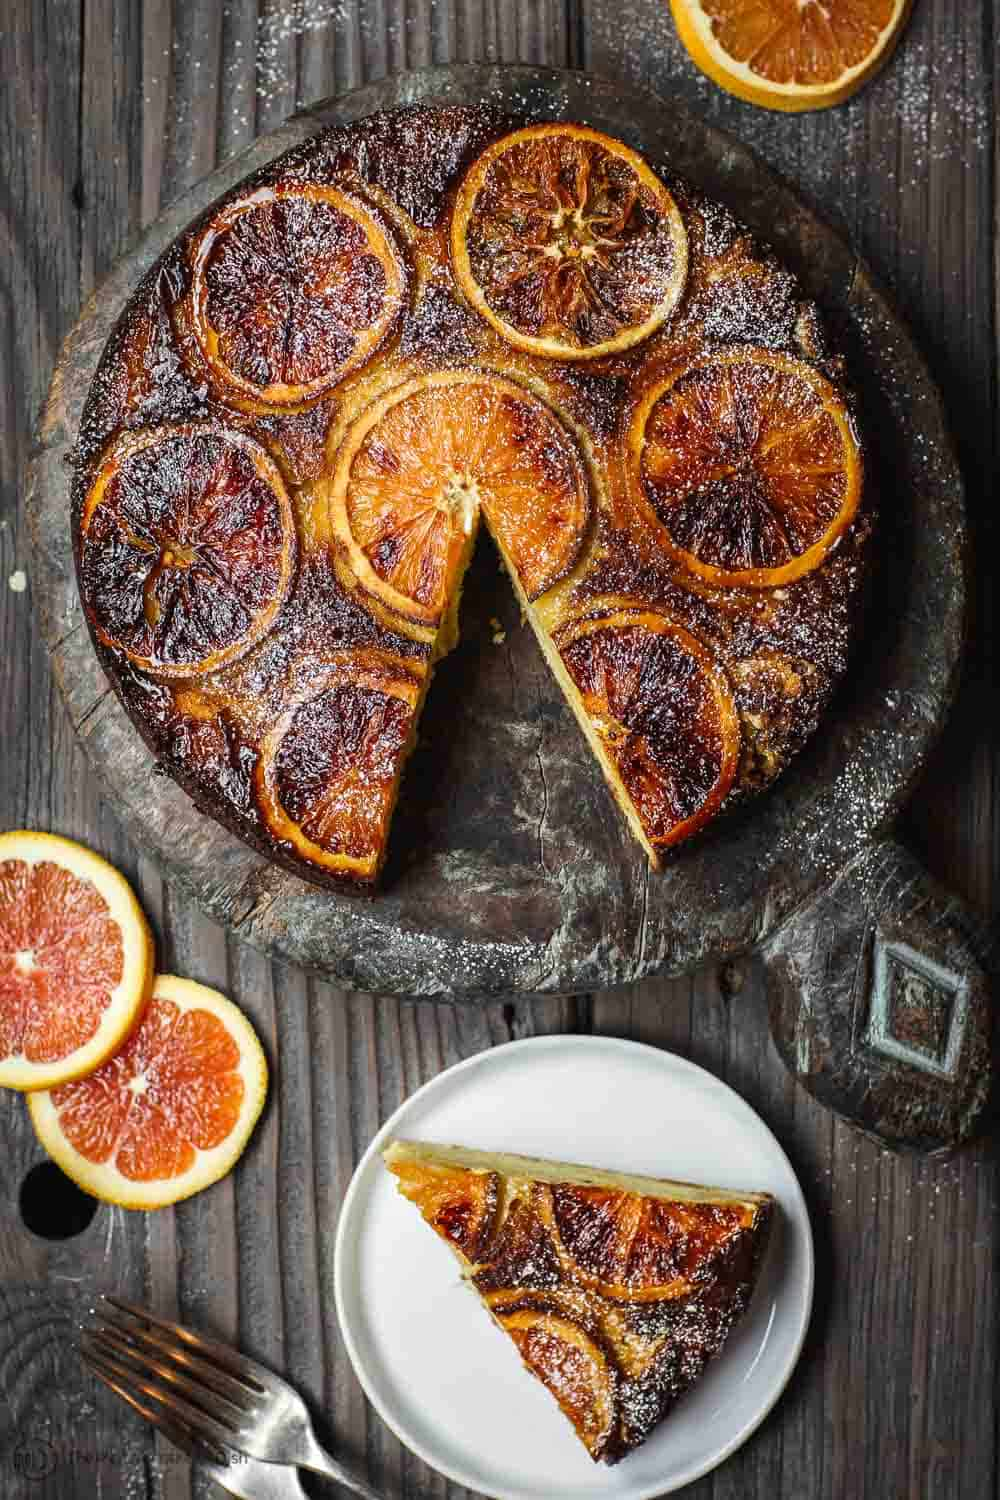 Slice of Orange Ricotta Cake served on a plate with orange slices on the side